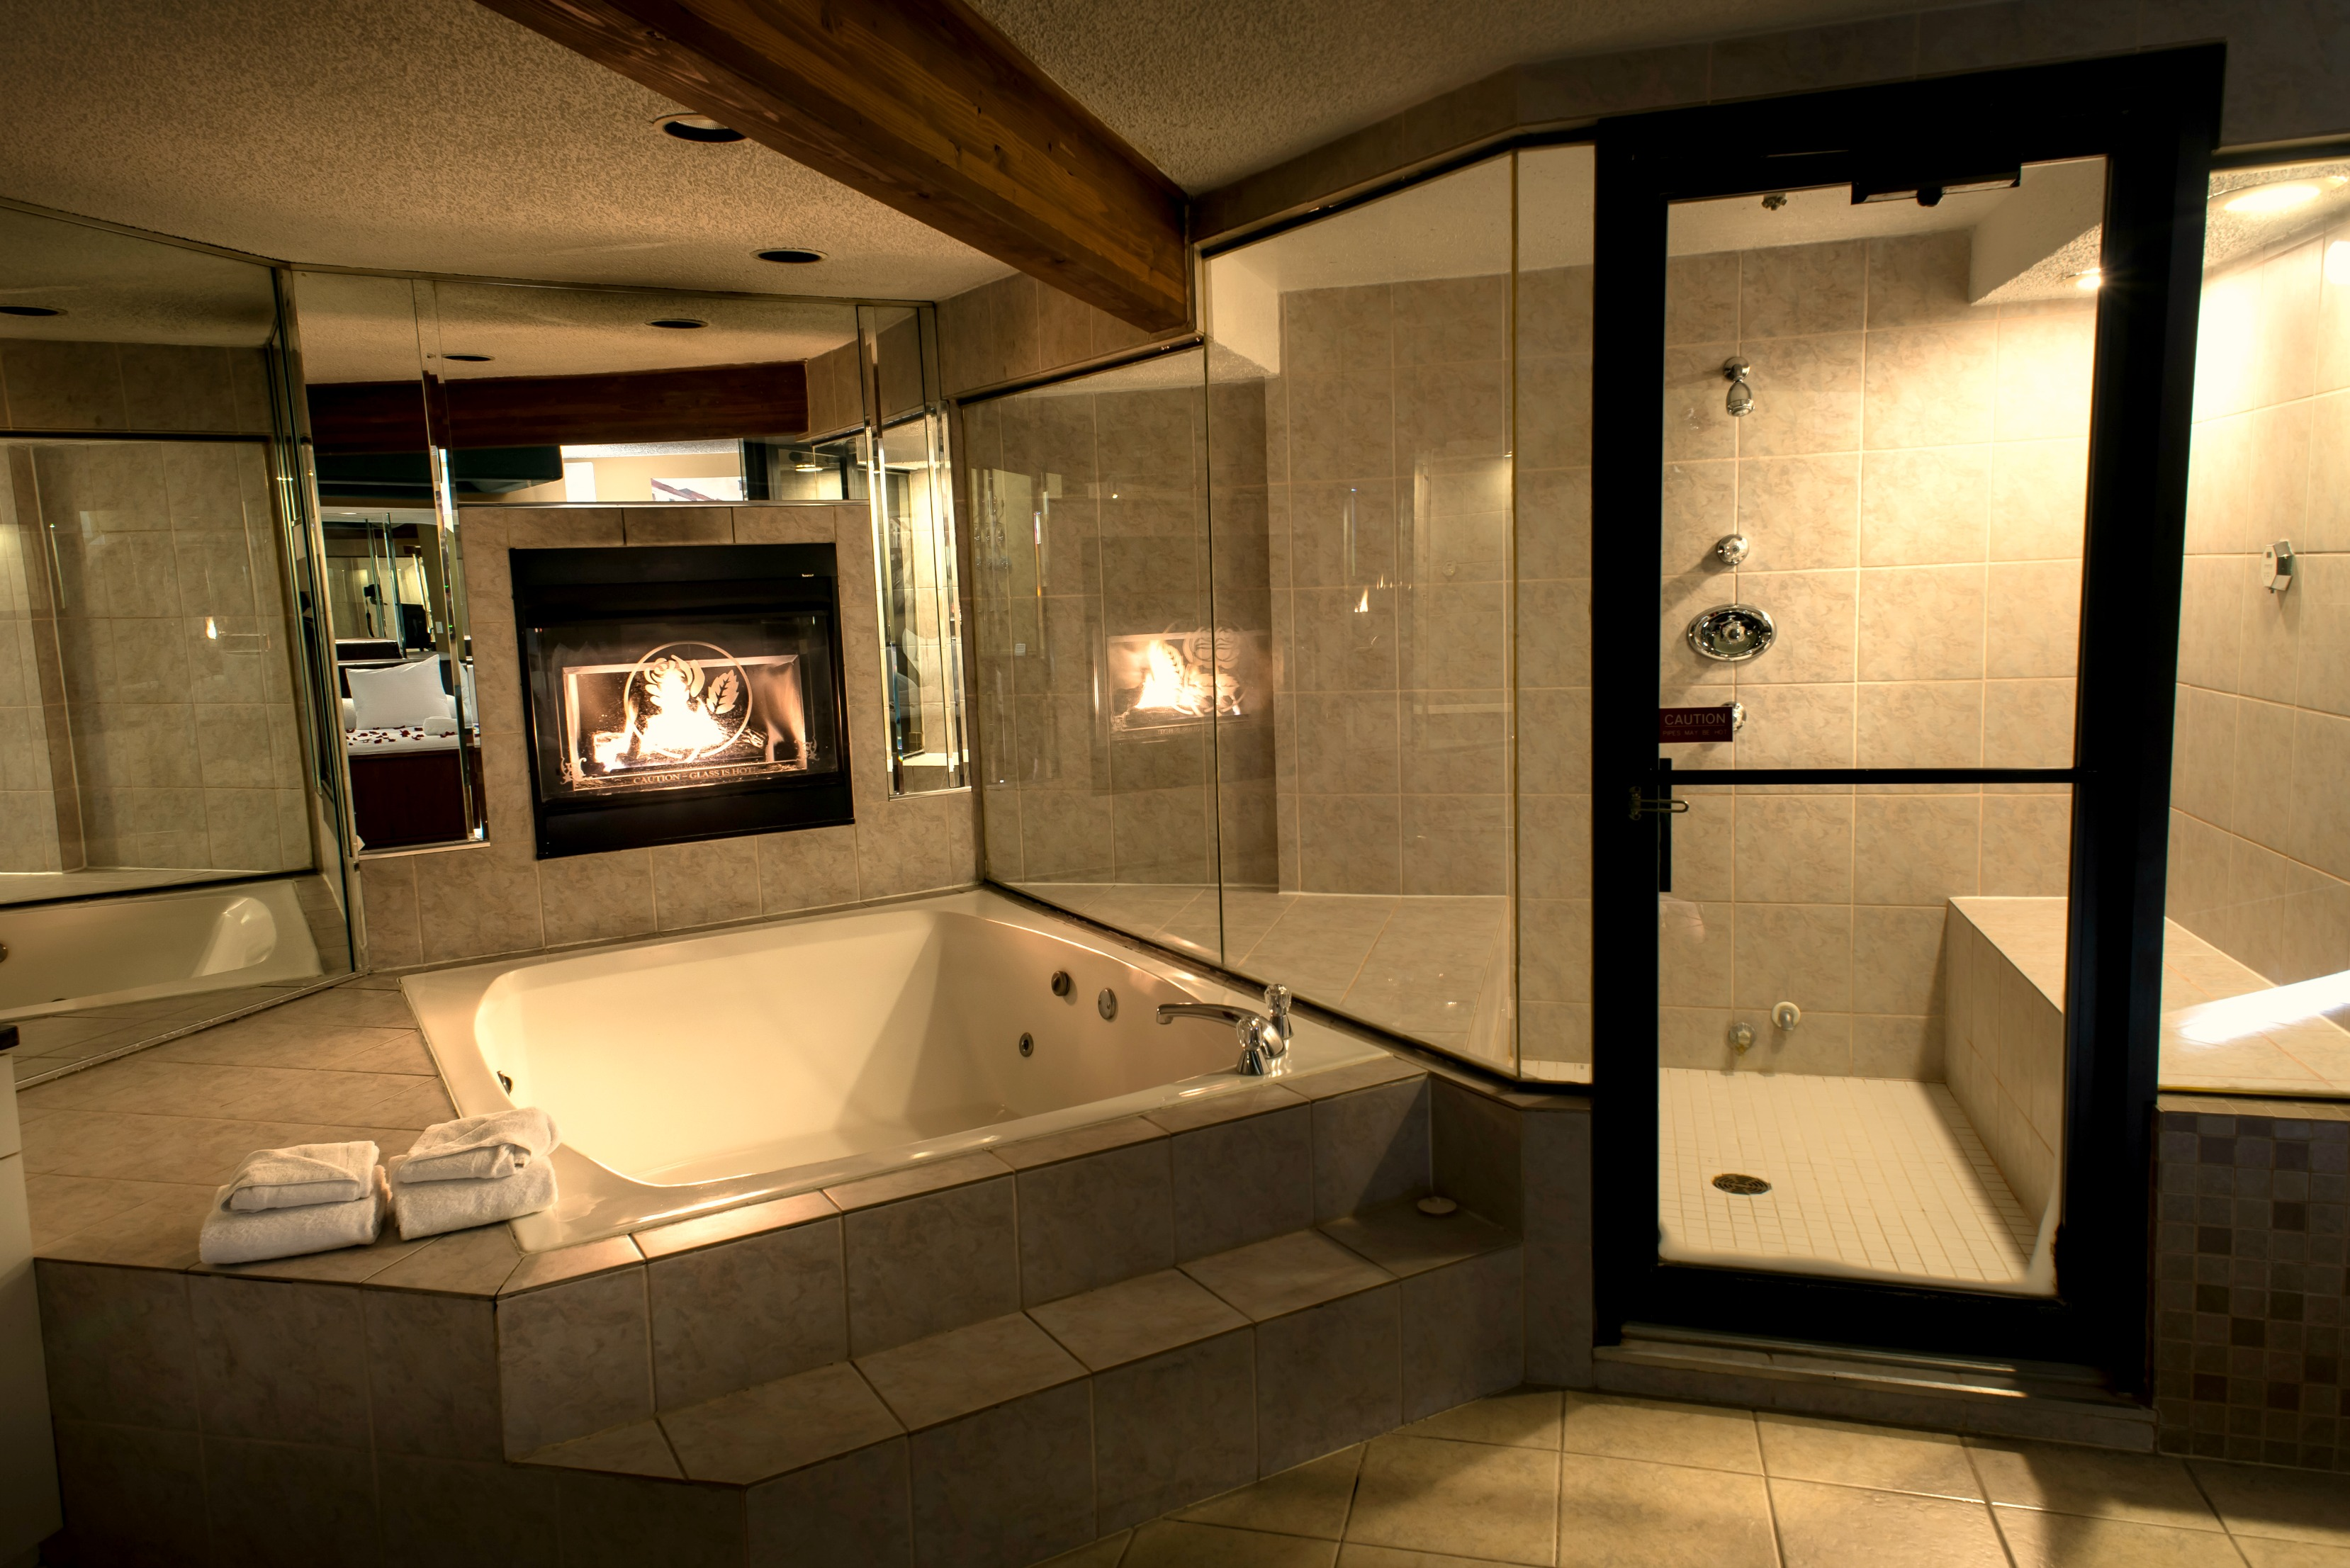 Hotels With Steam Showers - Image Cabinets and Shower Mandra-Tavern.Com